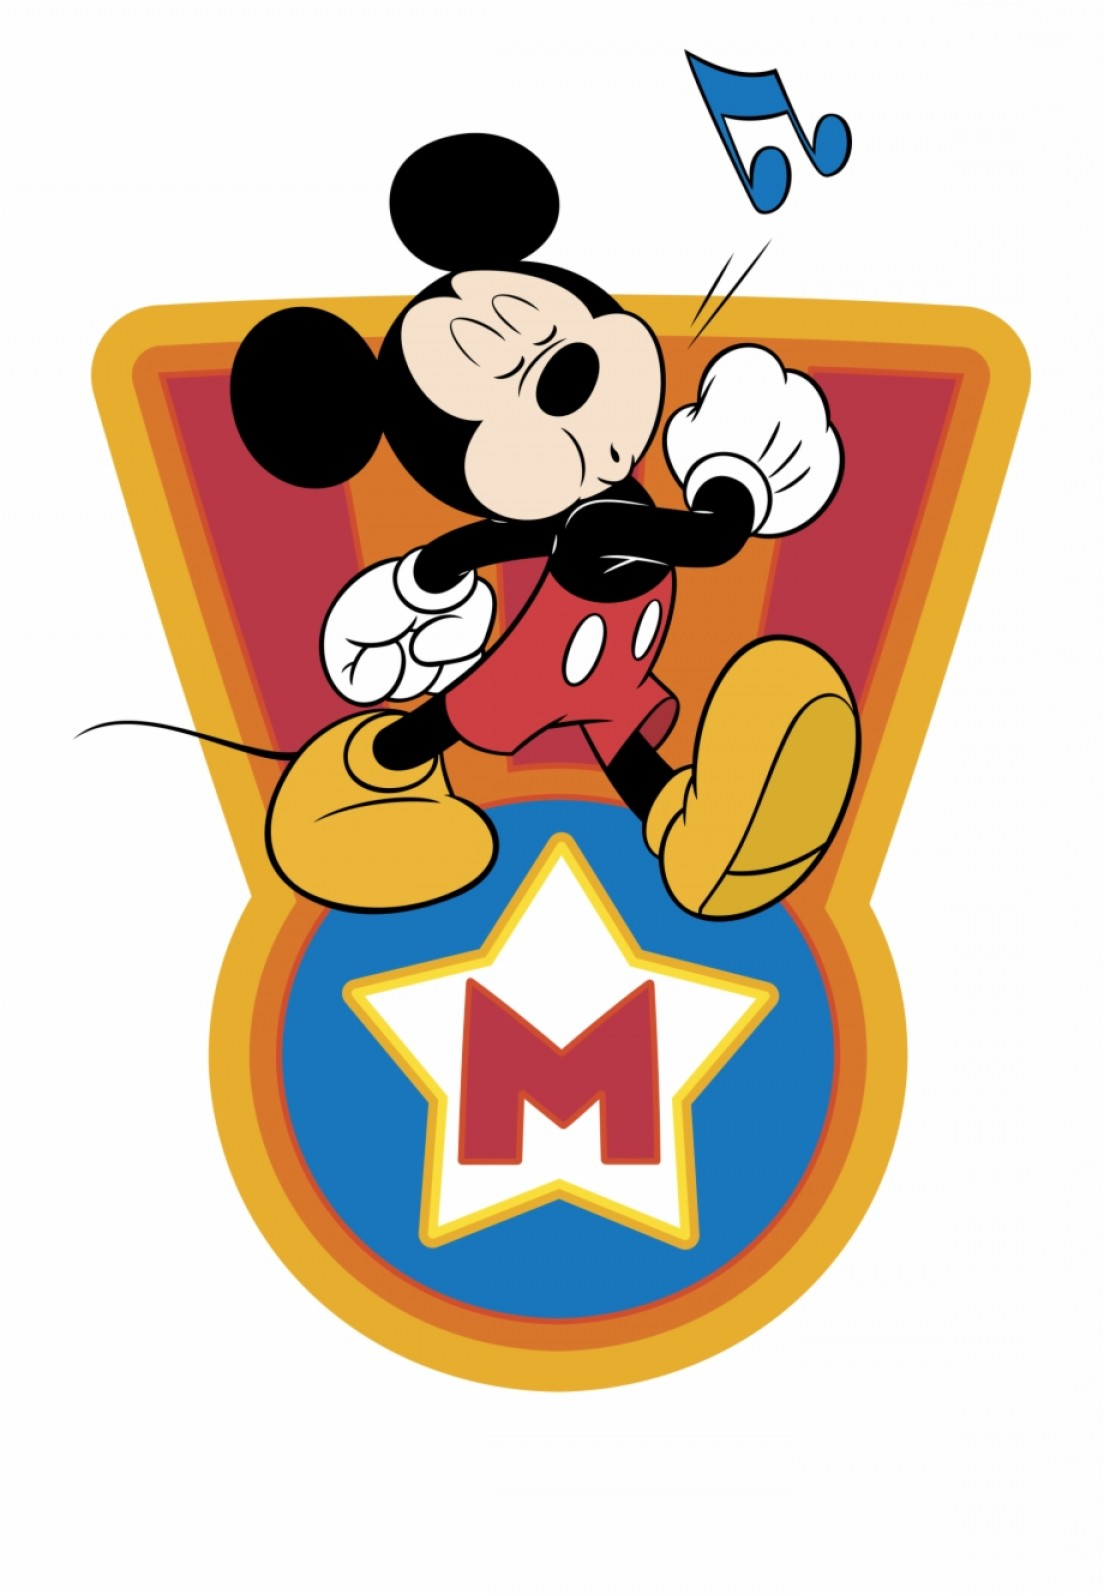 Fashon Shows Vectores: Ittwbjhmickey Mouse Logo Png Transparent Vectores Mickey Mouse